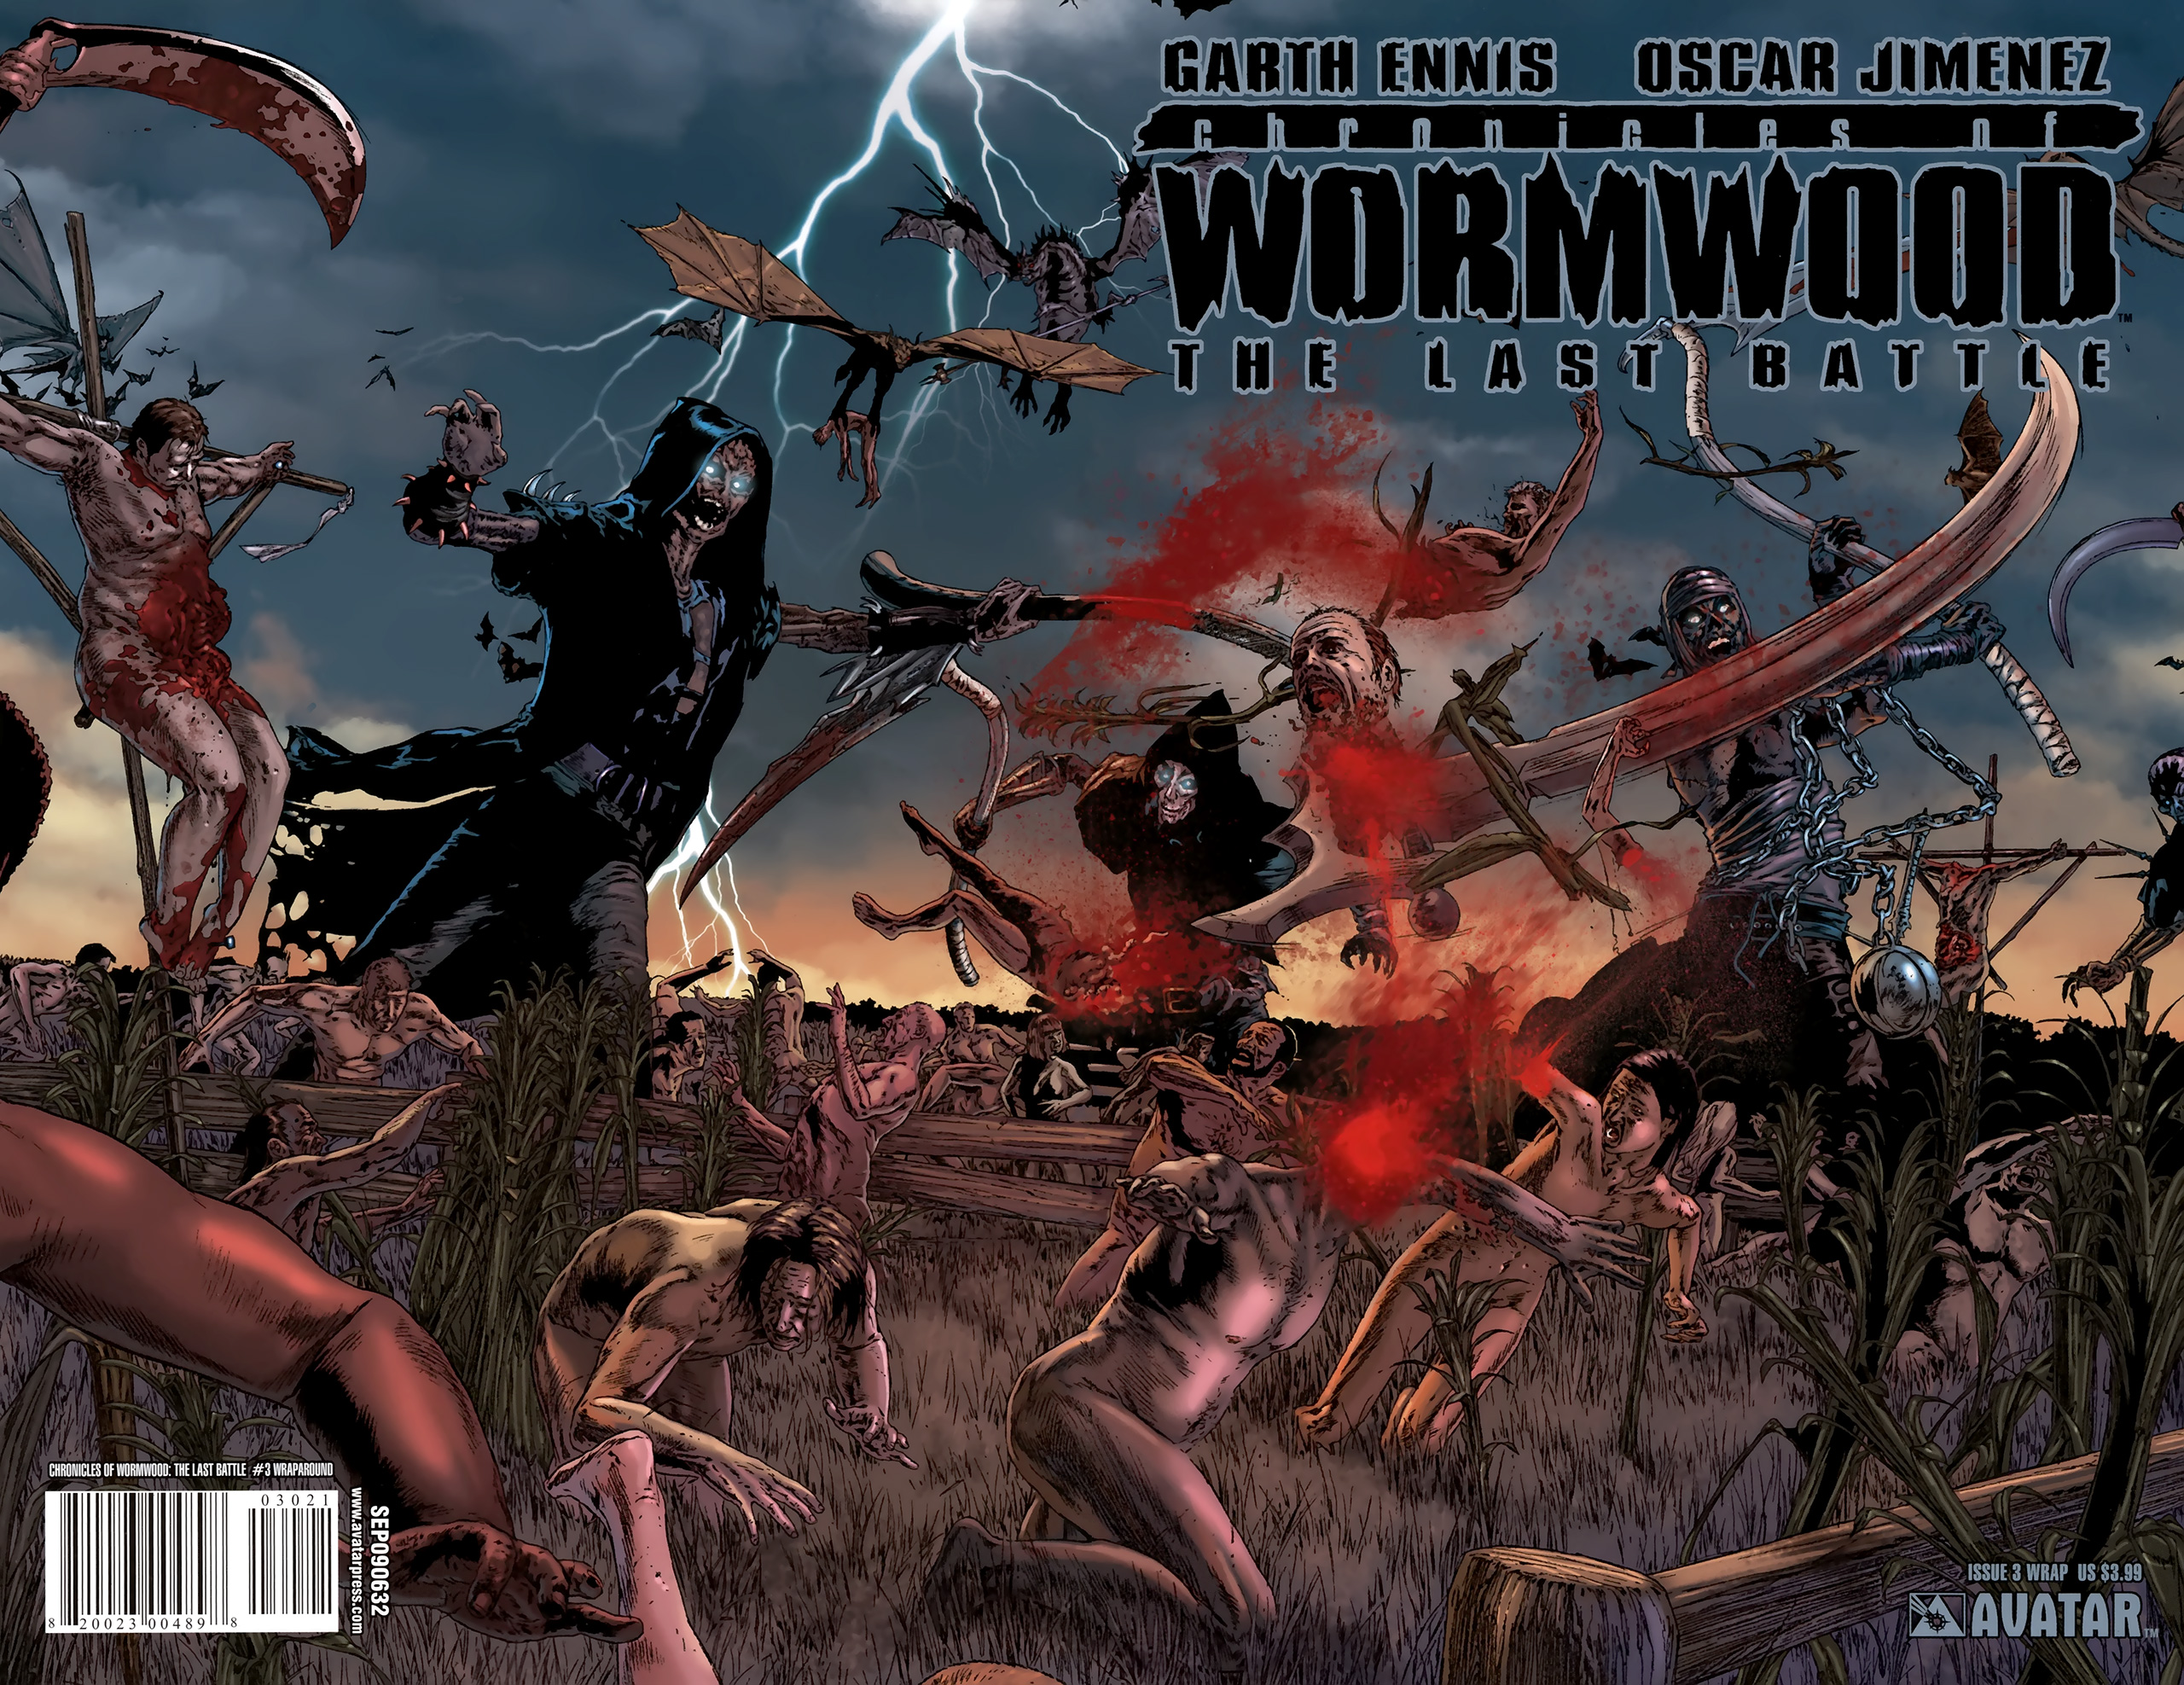 Read online Chronicles of Wormwood: The Last Battle comic -  Issue #3 - 2